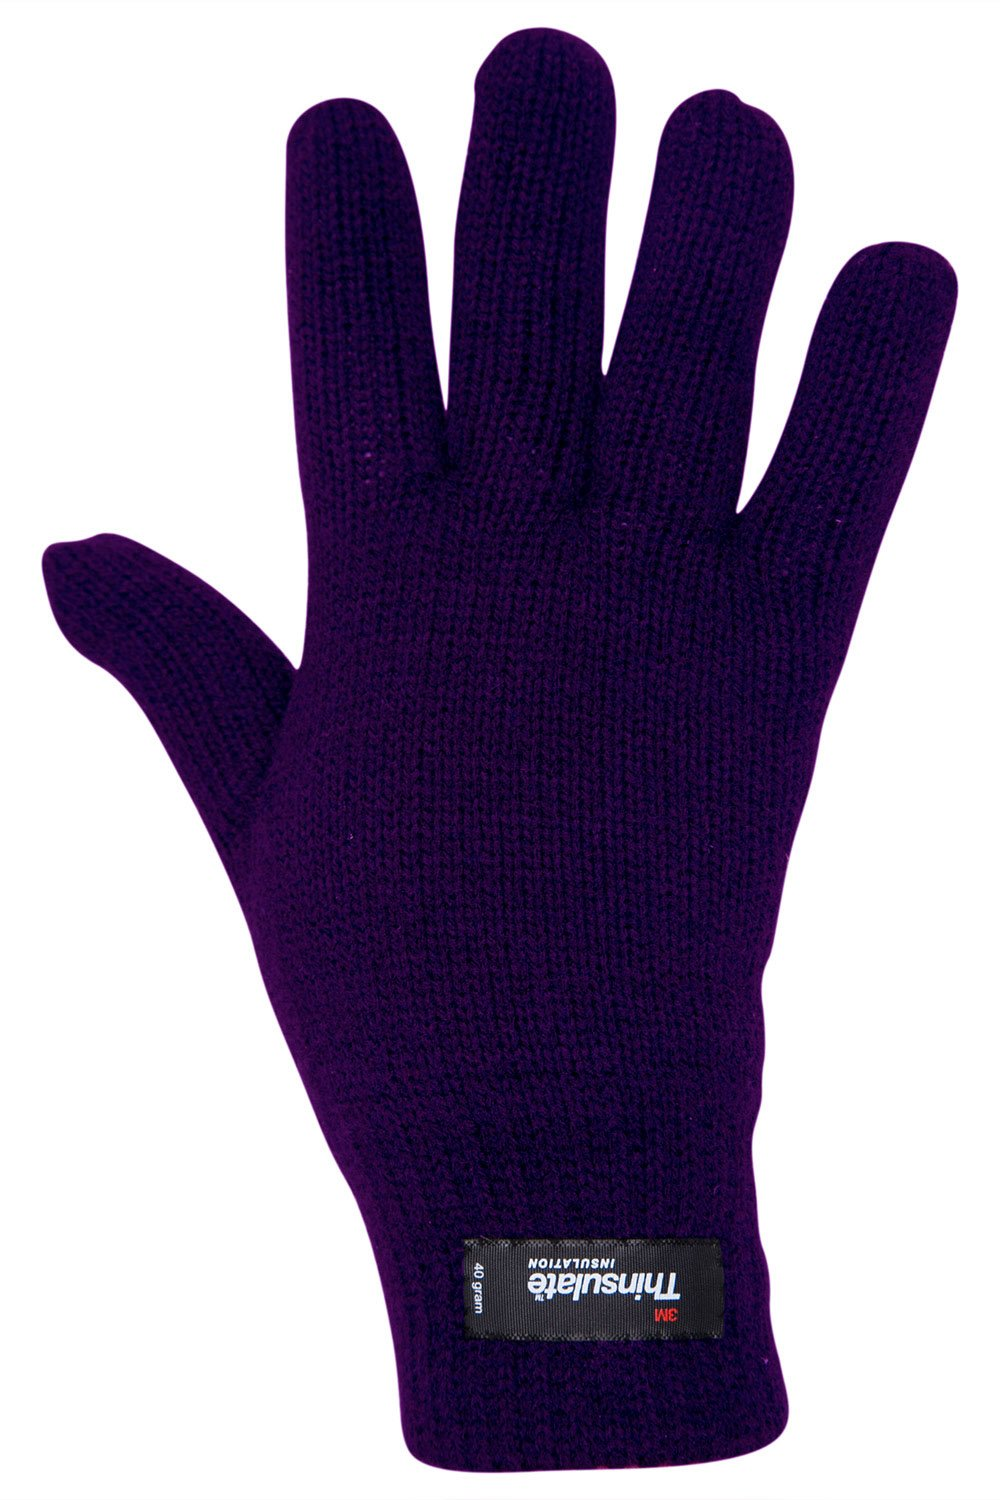 Mountain Warehouse Thinsulate Womens Knitted Gloves - Warm Mittens Black 019020005001